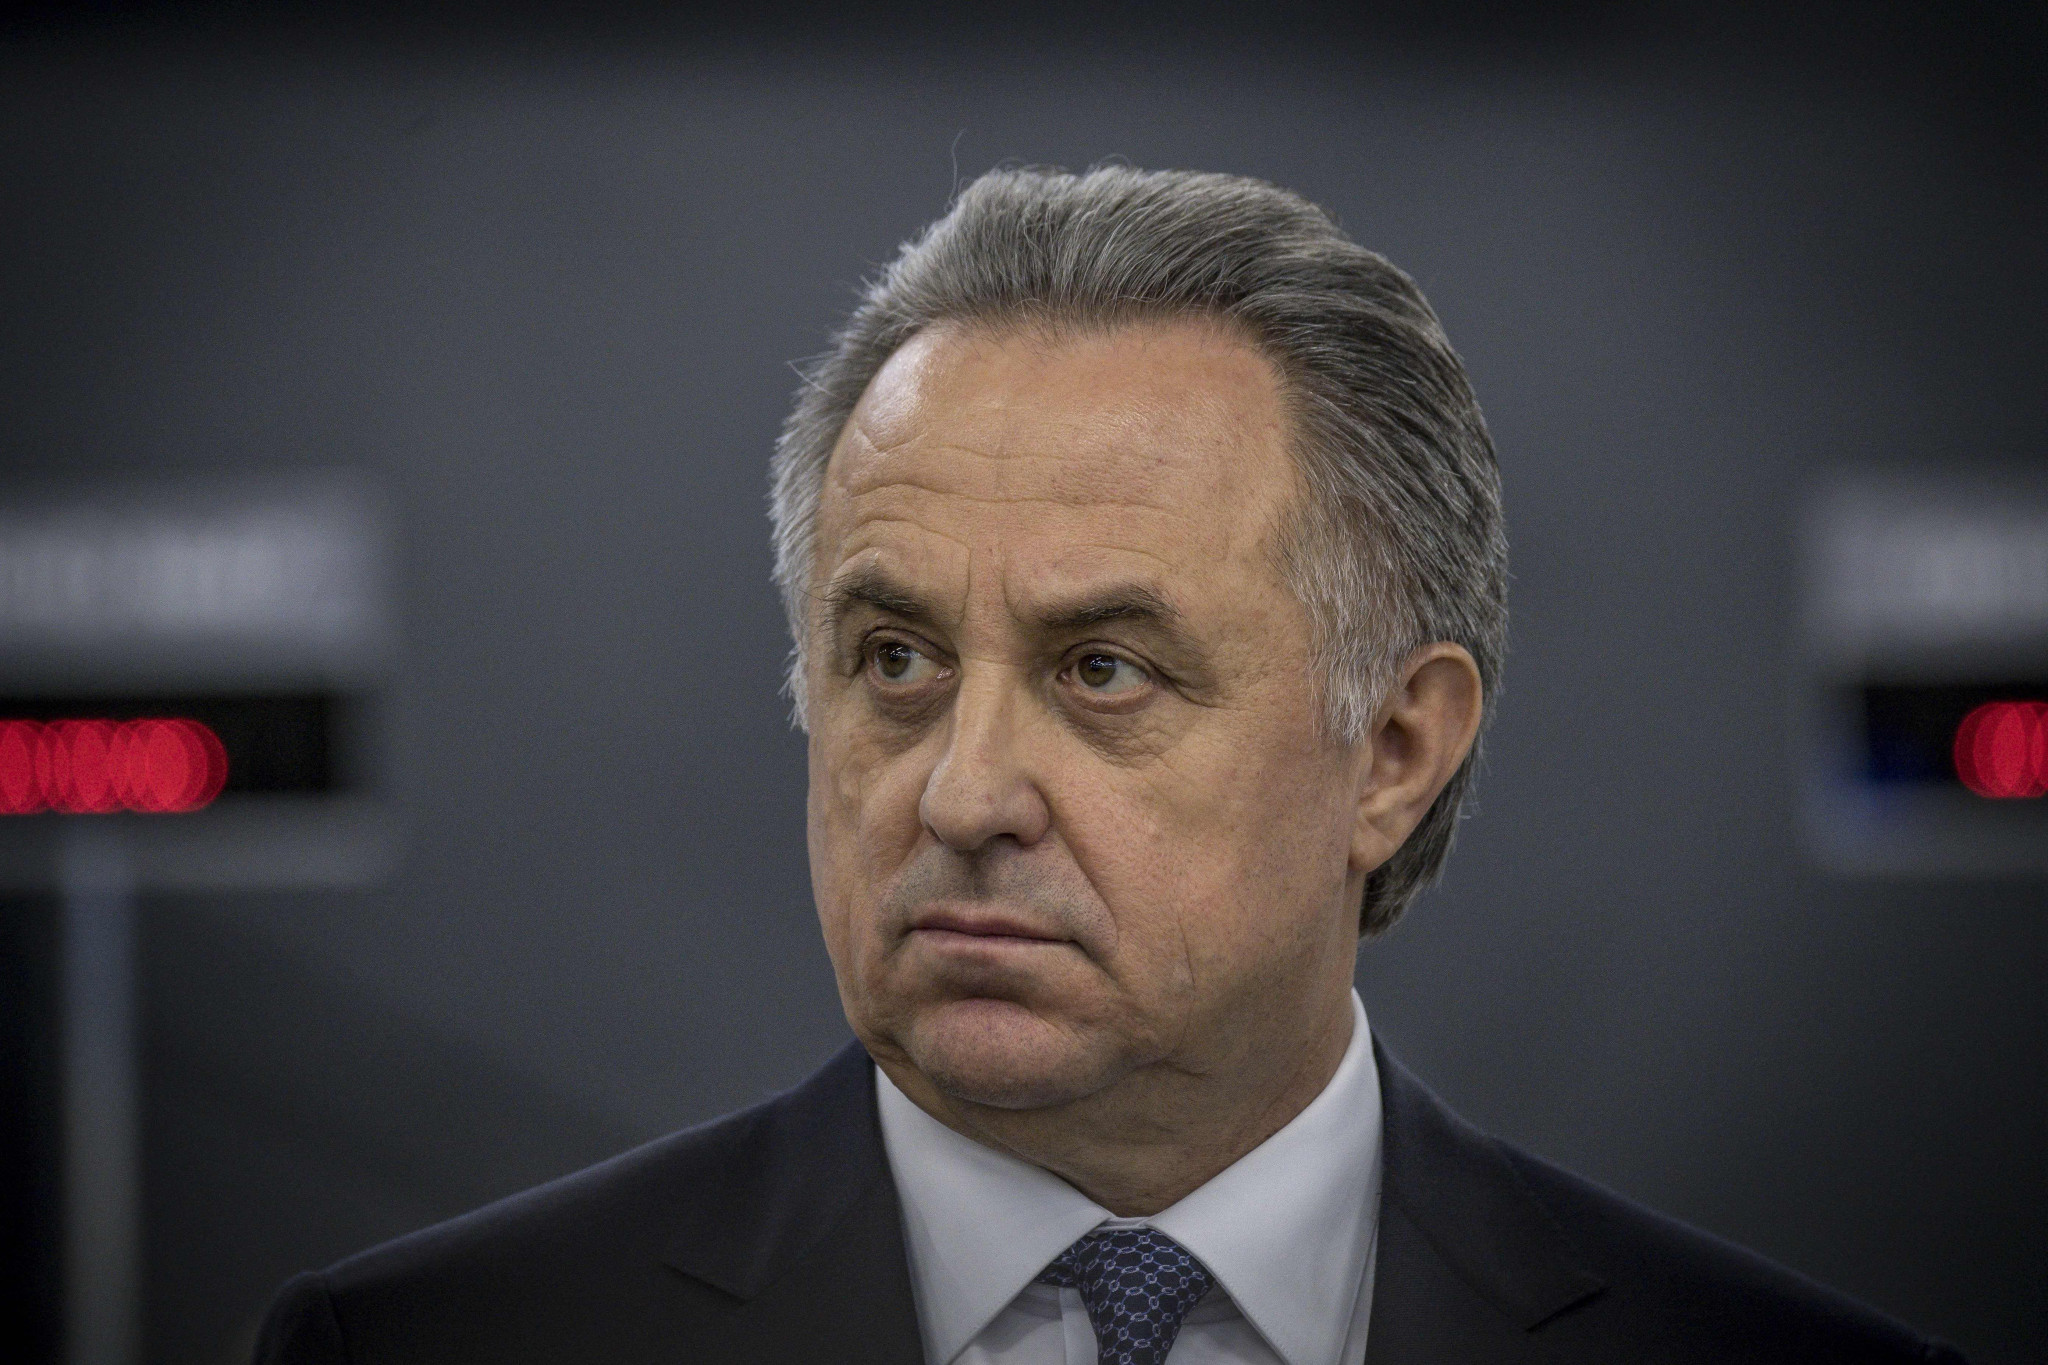 Russia's Deputy Prime Minister Vitaly Mutko has left his role as President of the Russian Football Union ©Getty Images